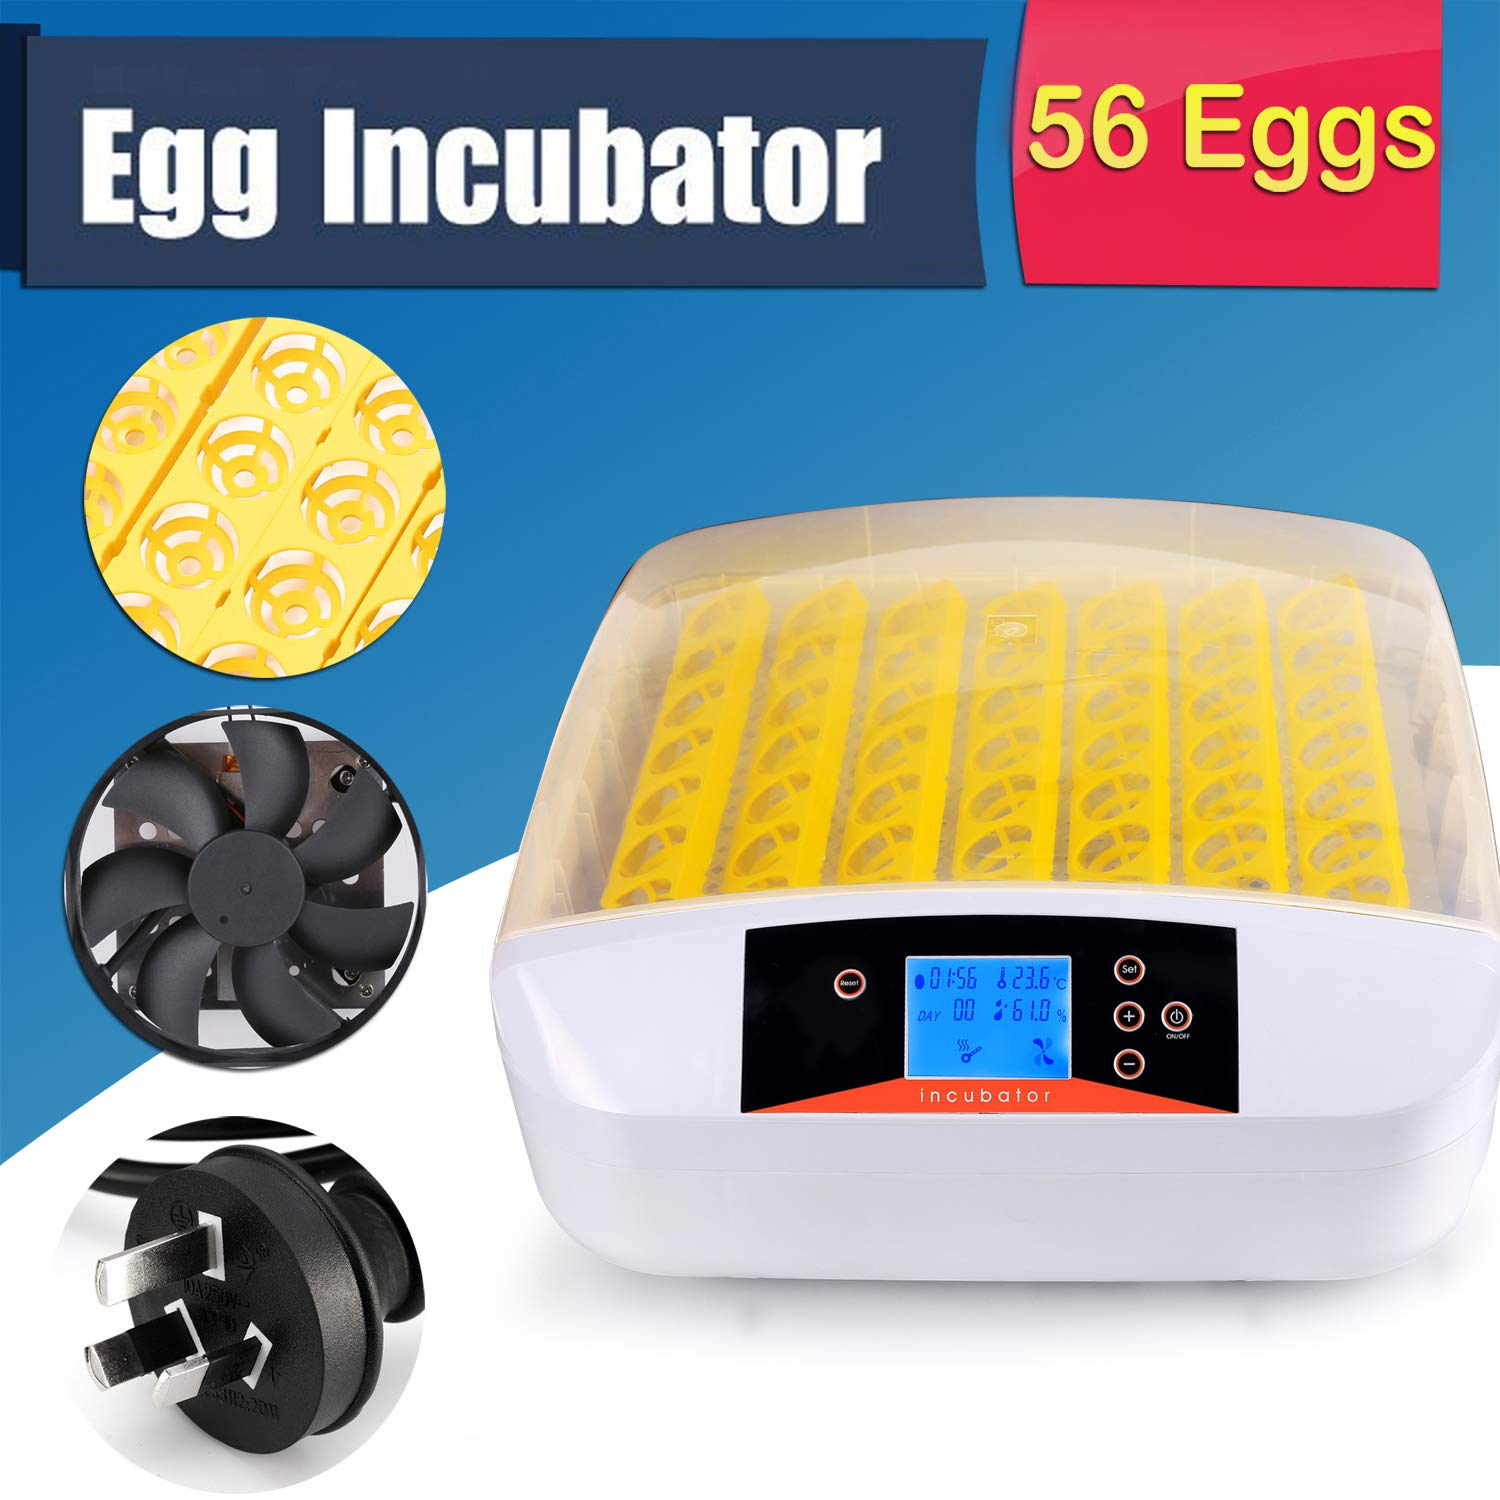 Currens 56 Egg Incubator with Eggs Turner,Digital Automatic Incubators for Hatching Chicken Duck Quail Birds Eggs Poultry Hatcher,Encubadora De Huevos by Currens (Image #4)